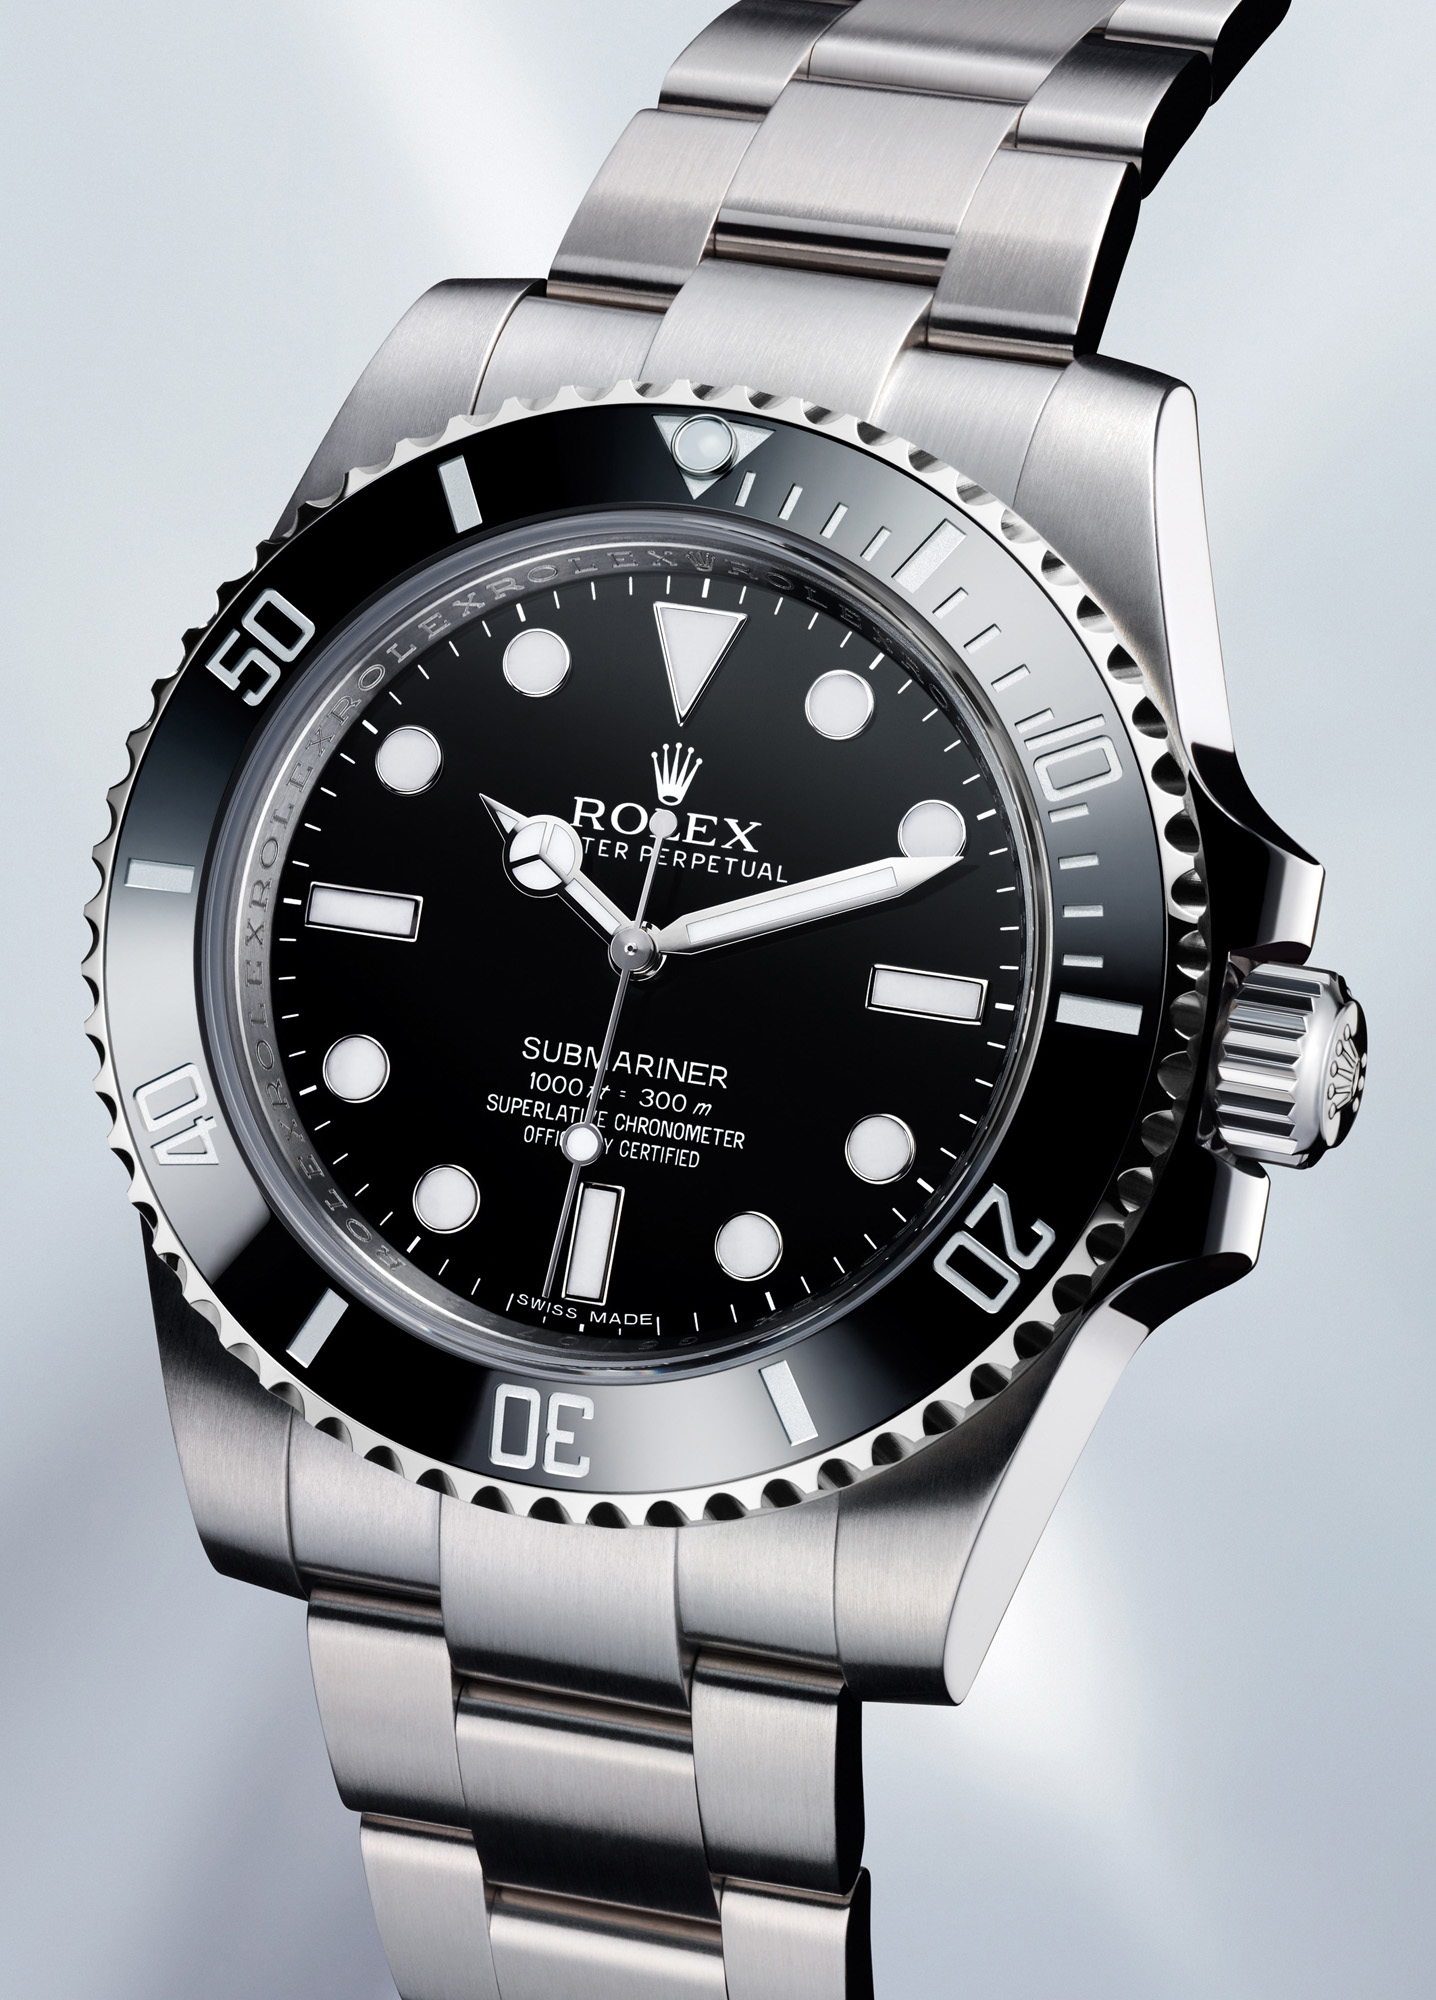 Replica Rolex Submariner Ref. 114060 - Dial